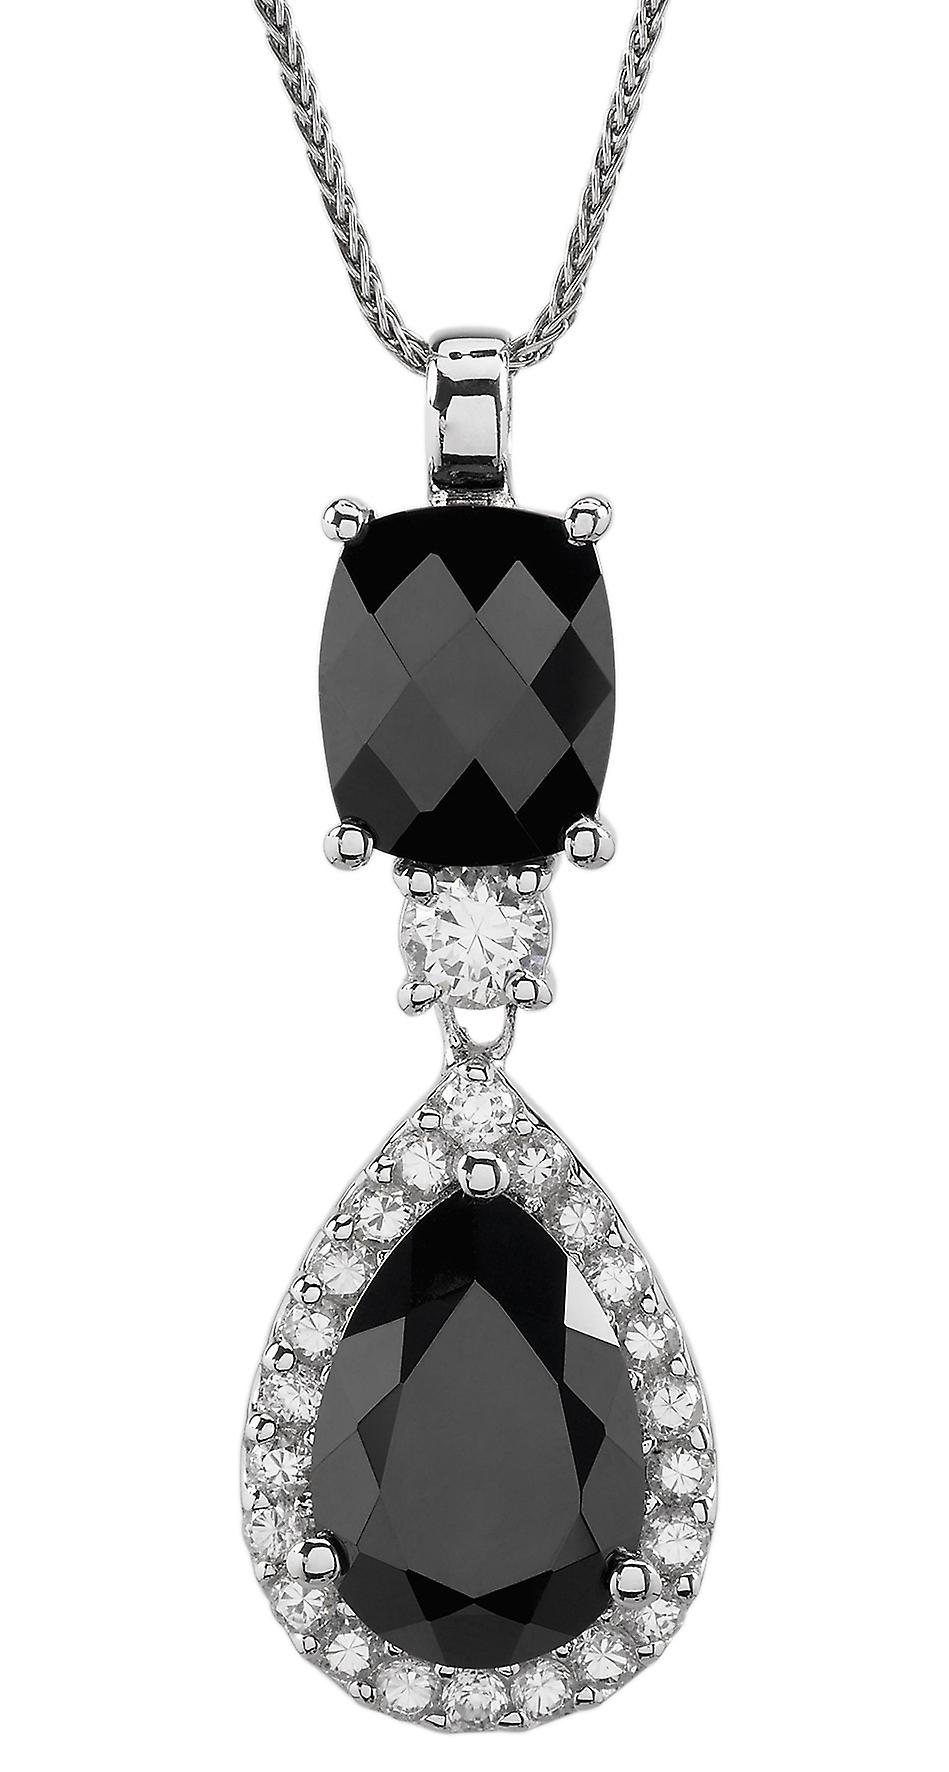 Burgmeister chain and pendant JBM1051-421, 925 sterling silver rhodanized, black zirconia